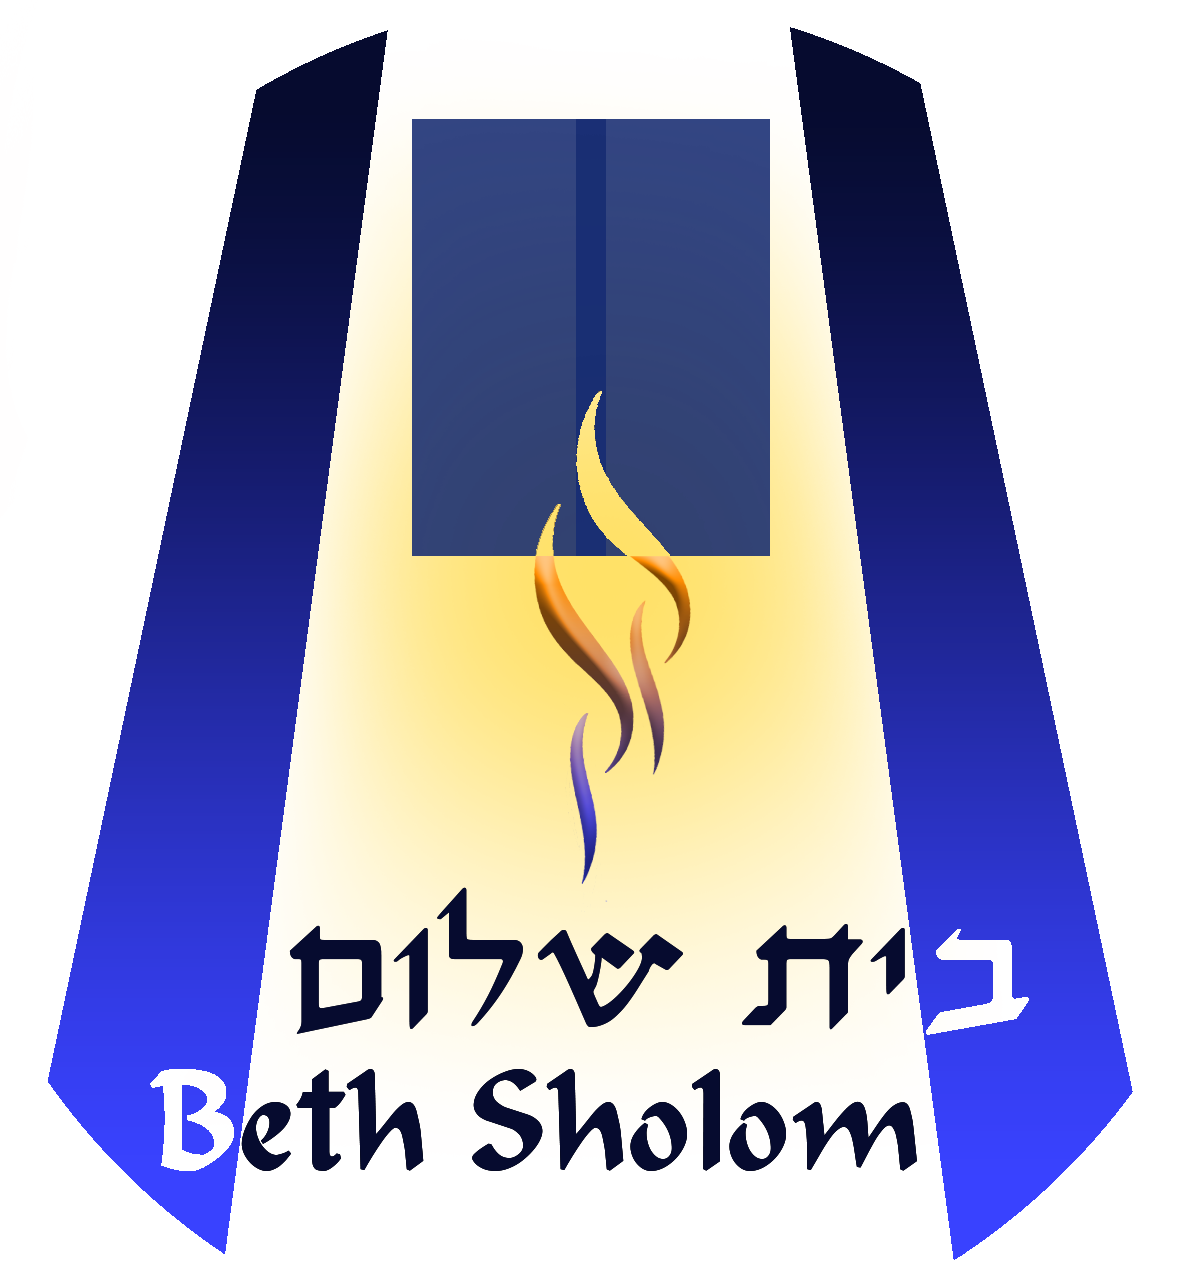 Congregation Beth Sholom